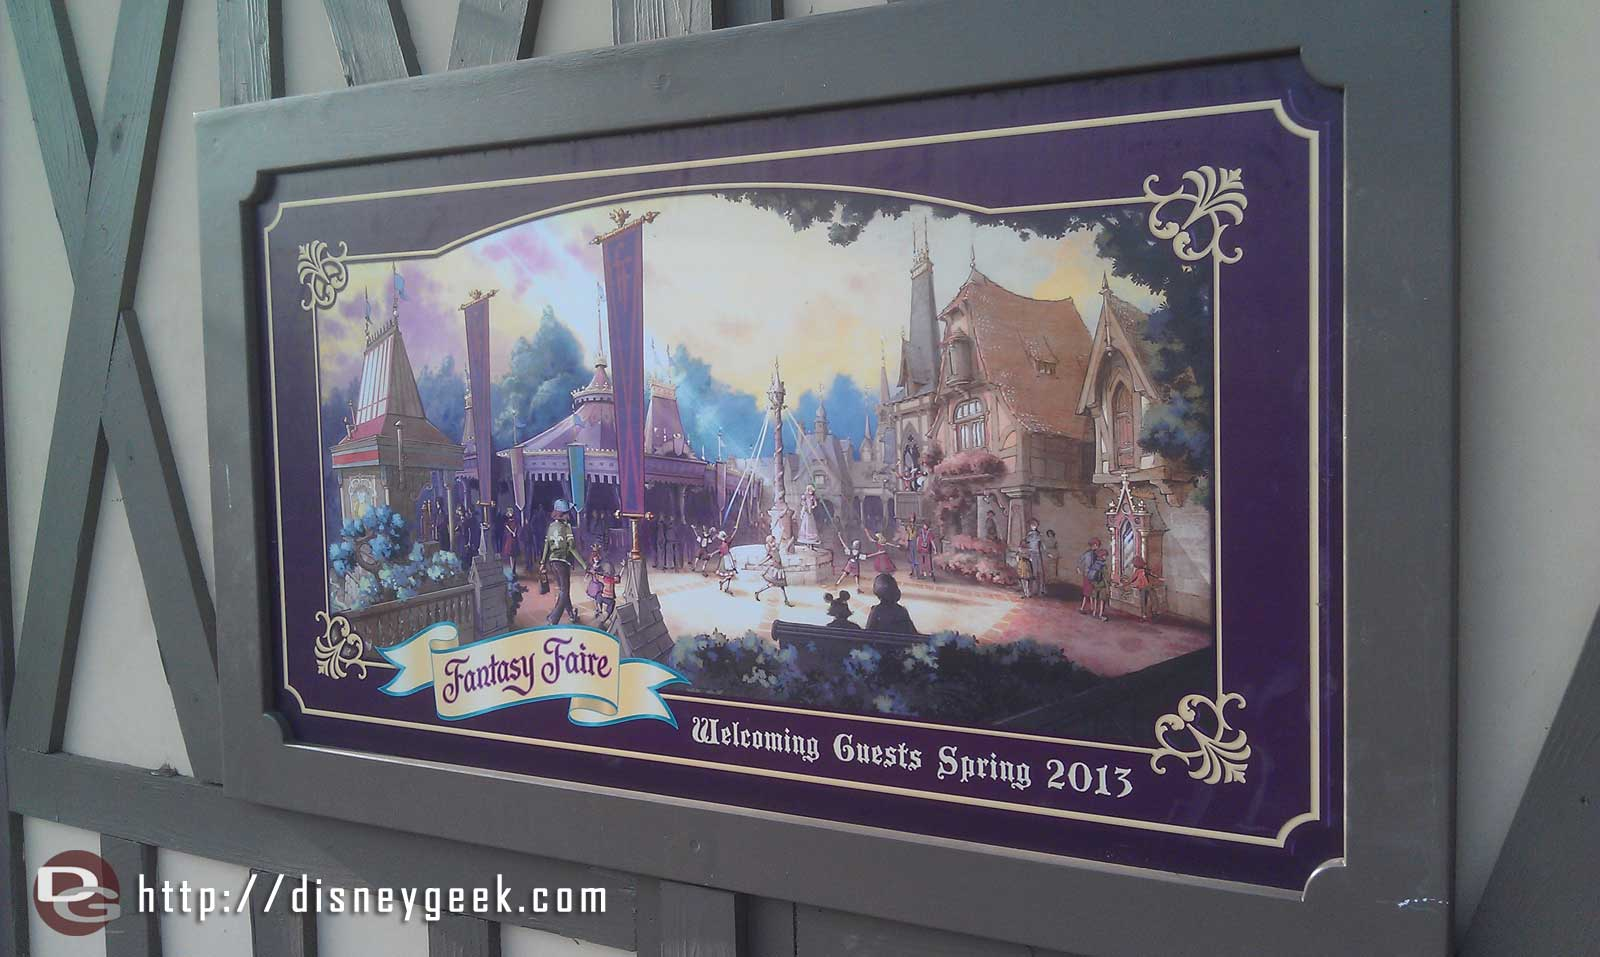 and he referenced what they saw on TV.  (it is for the new Fantasy Faire meet and greet)